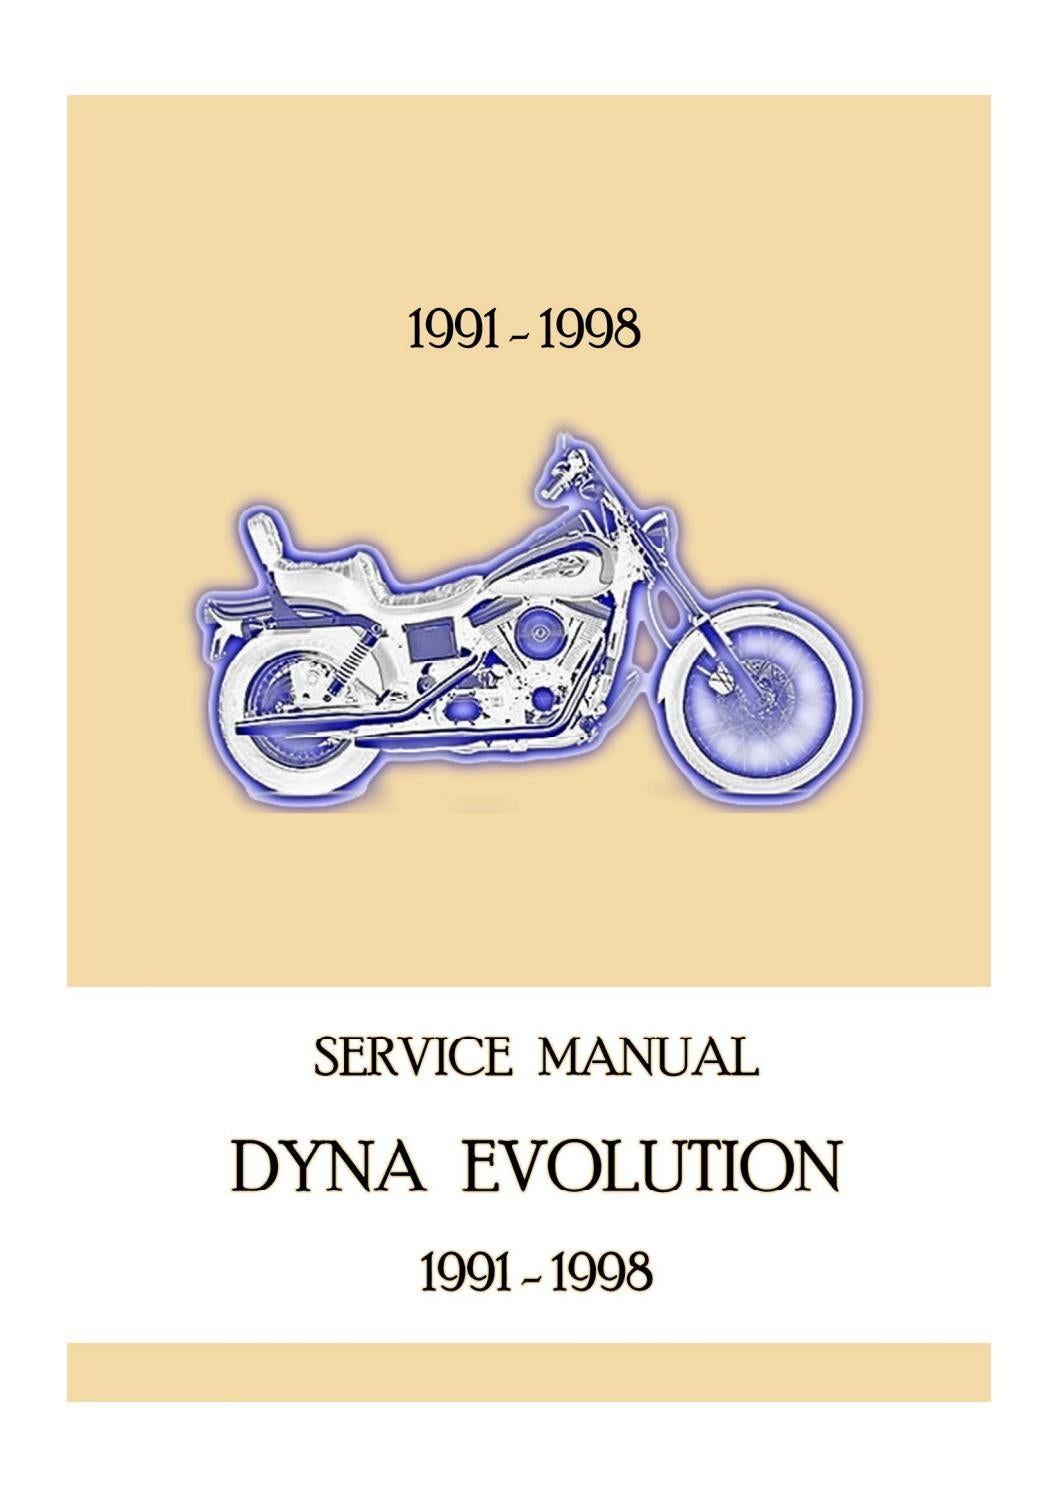 1997 Harley Davidson Dyna Glide Service Repair Manual by ...